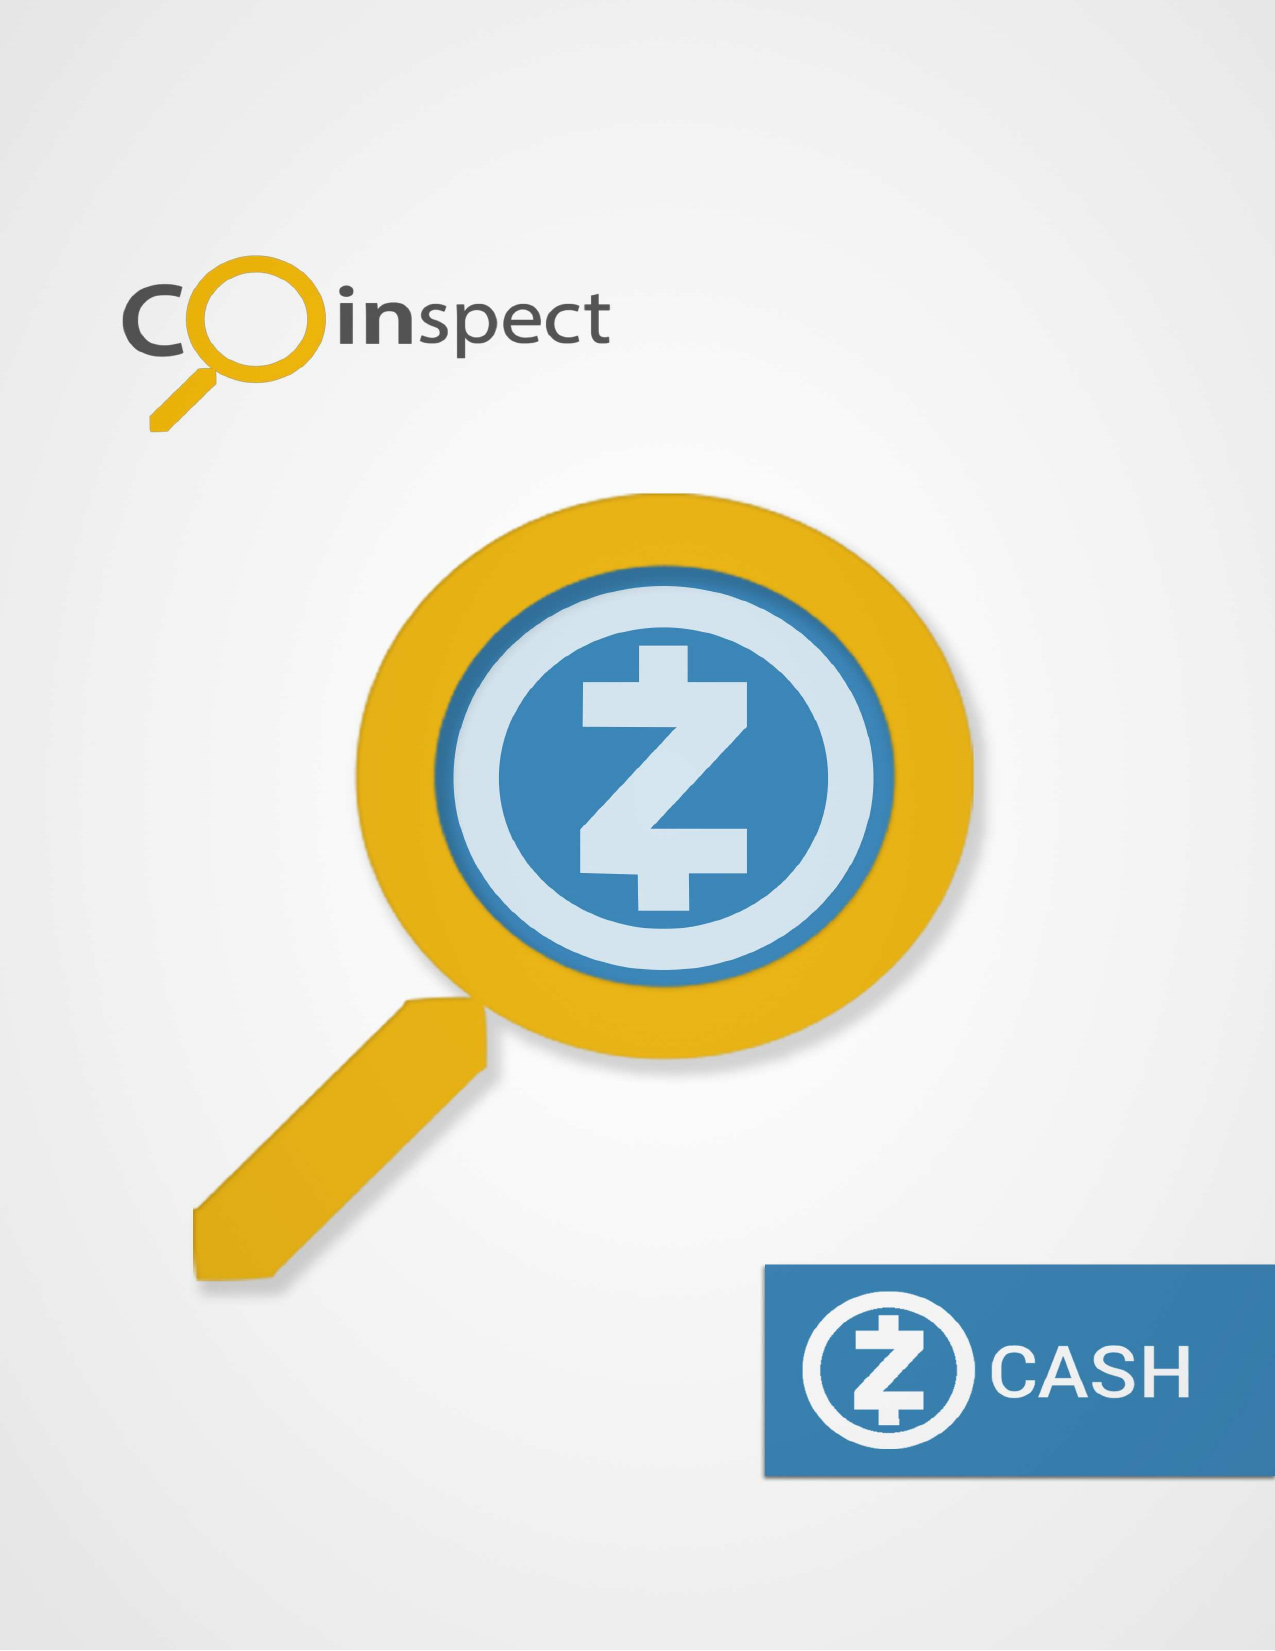 First page of the 'CoinspectReportZcash2016' PDF